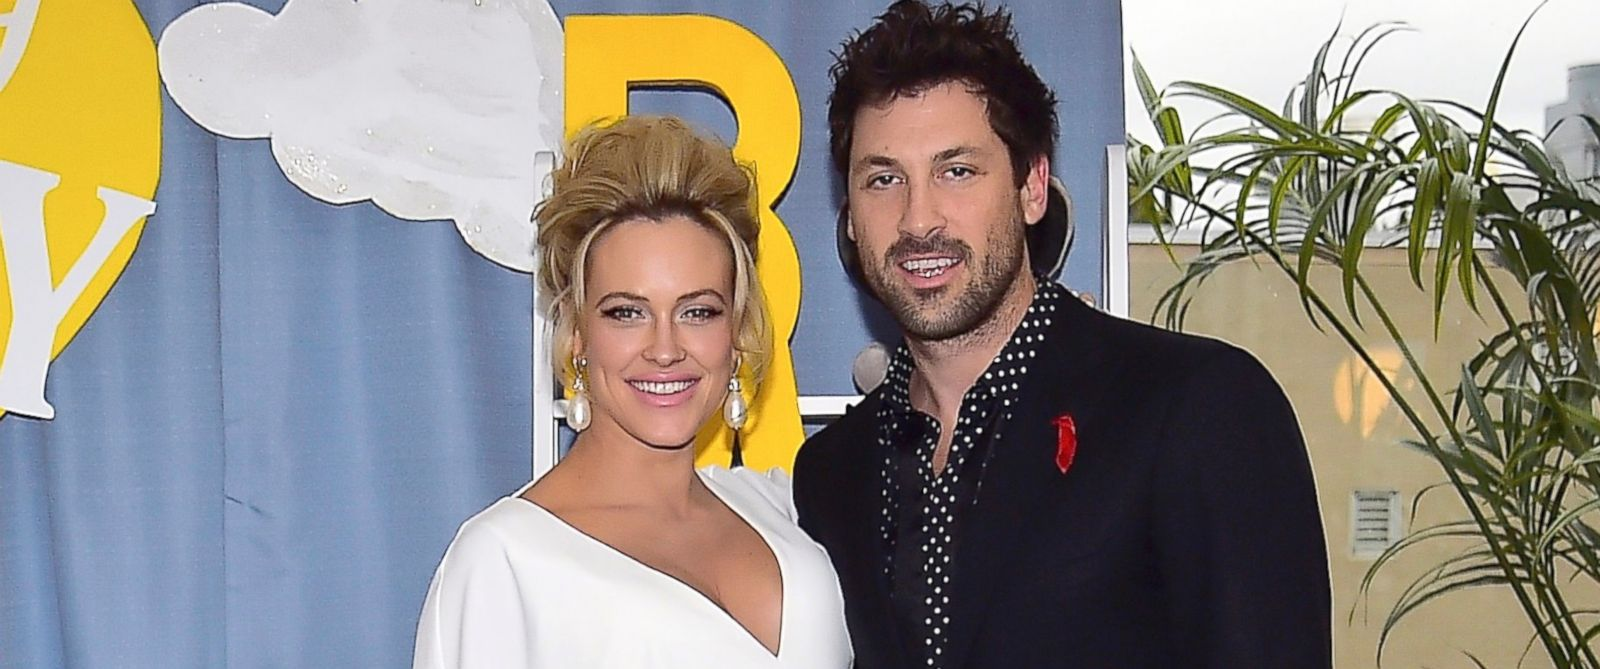 PHOTO: Peta Murgatroyd, Maksim Chmerkovskiy at The McCarren Hotel, Dec. 18, 2016, in Brooklyn, New York.